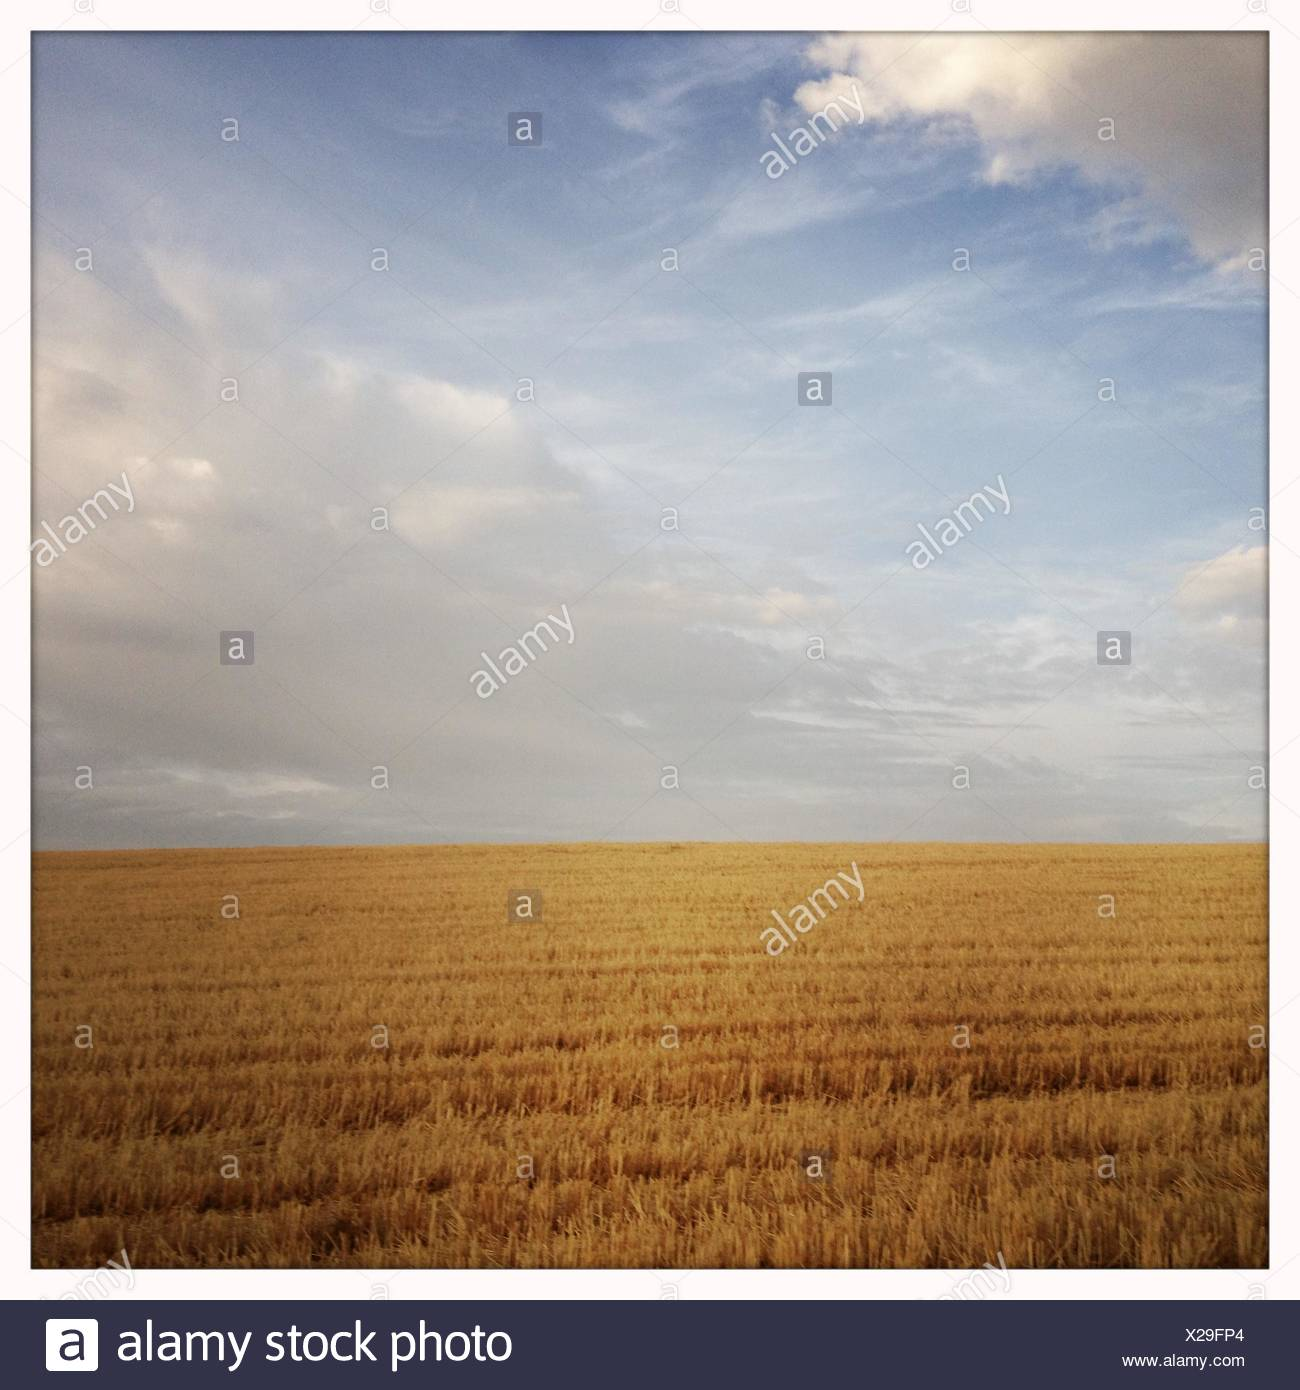 Spain, Cloudy sky over golden field - Stock Image